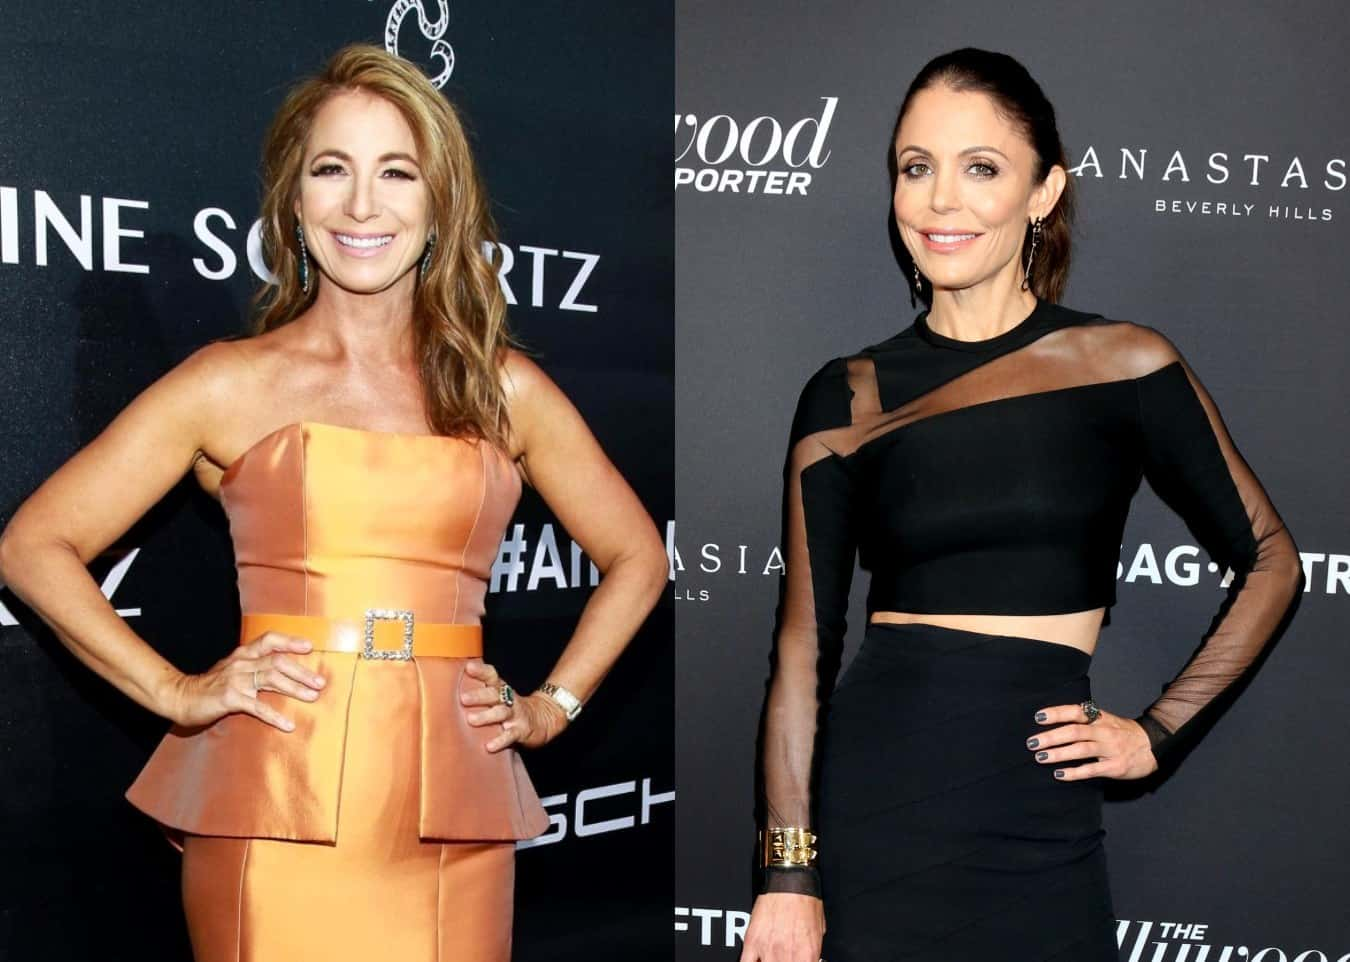 REPORT: Jill Zarin is Returning to RHONY for Season 12 to Replace Bethenny Frankel, See How Fans on Twitter Are Reacting